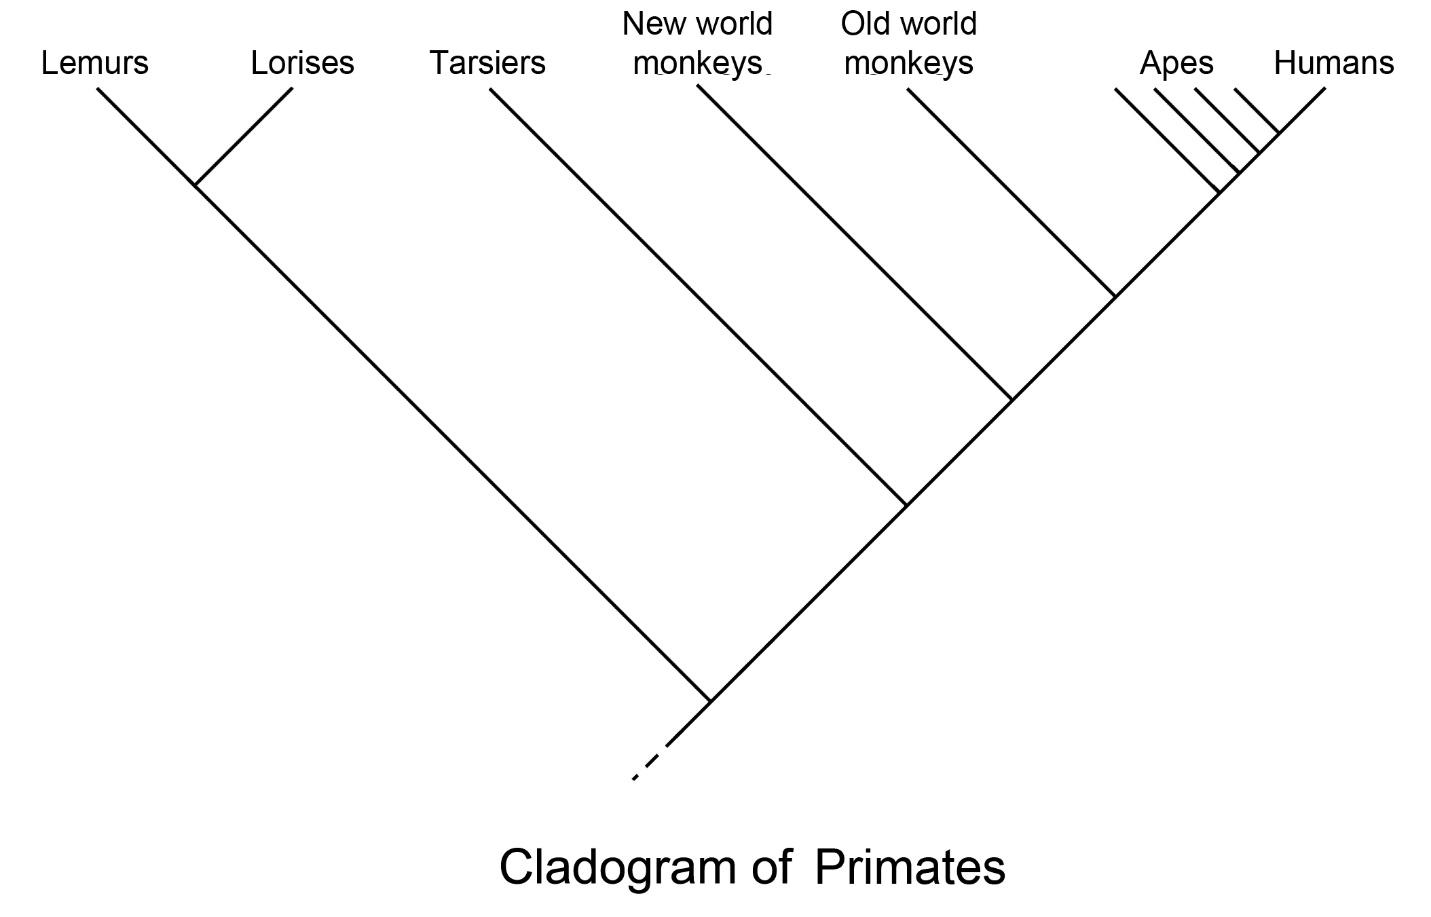 cladogram of primates